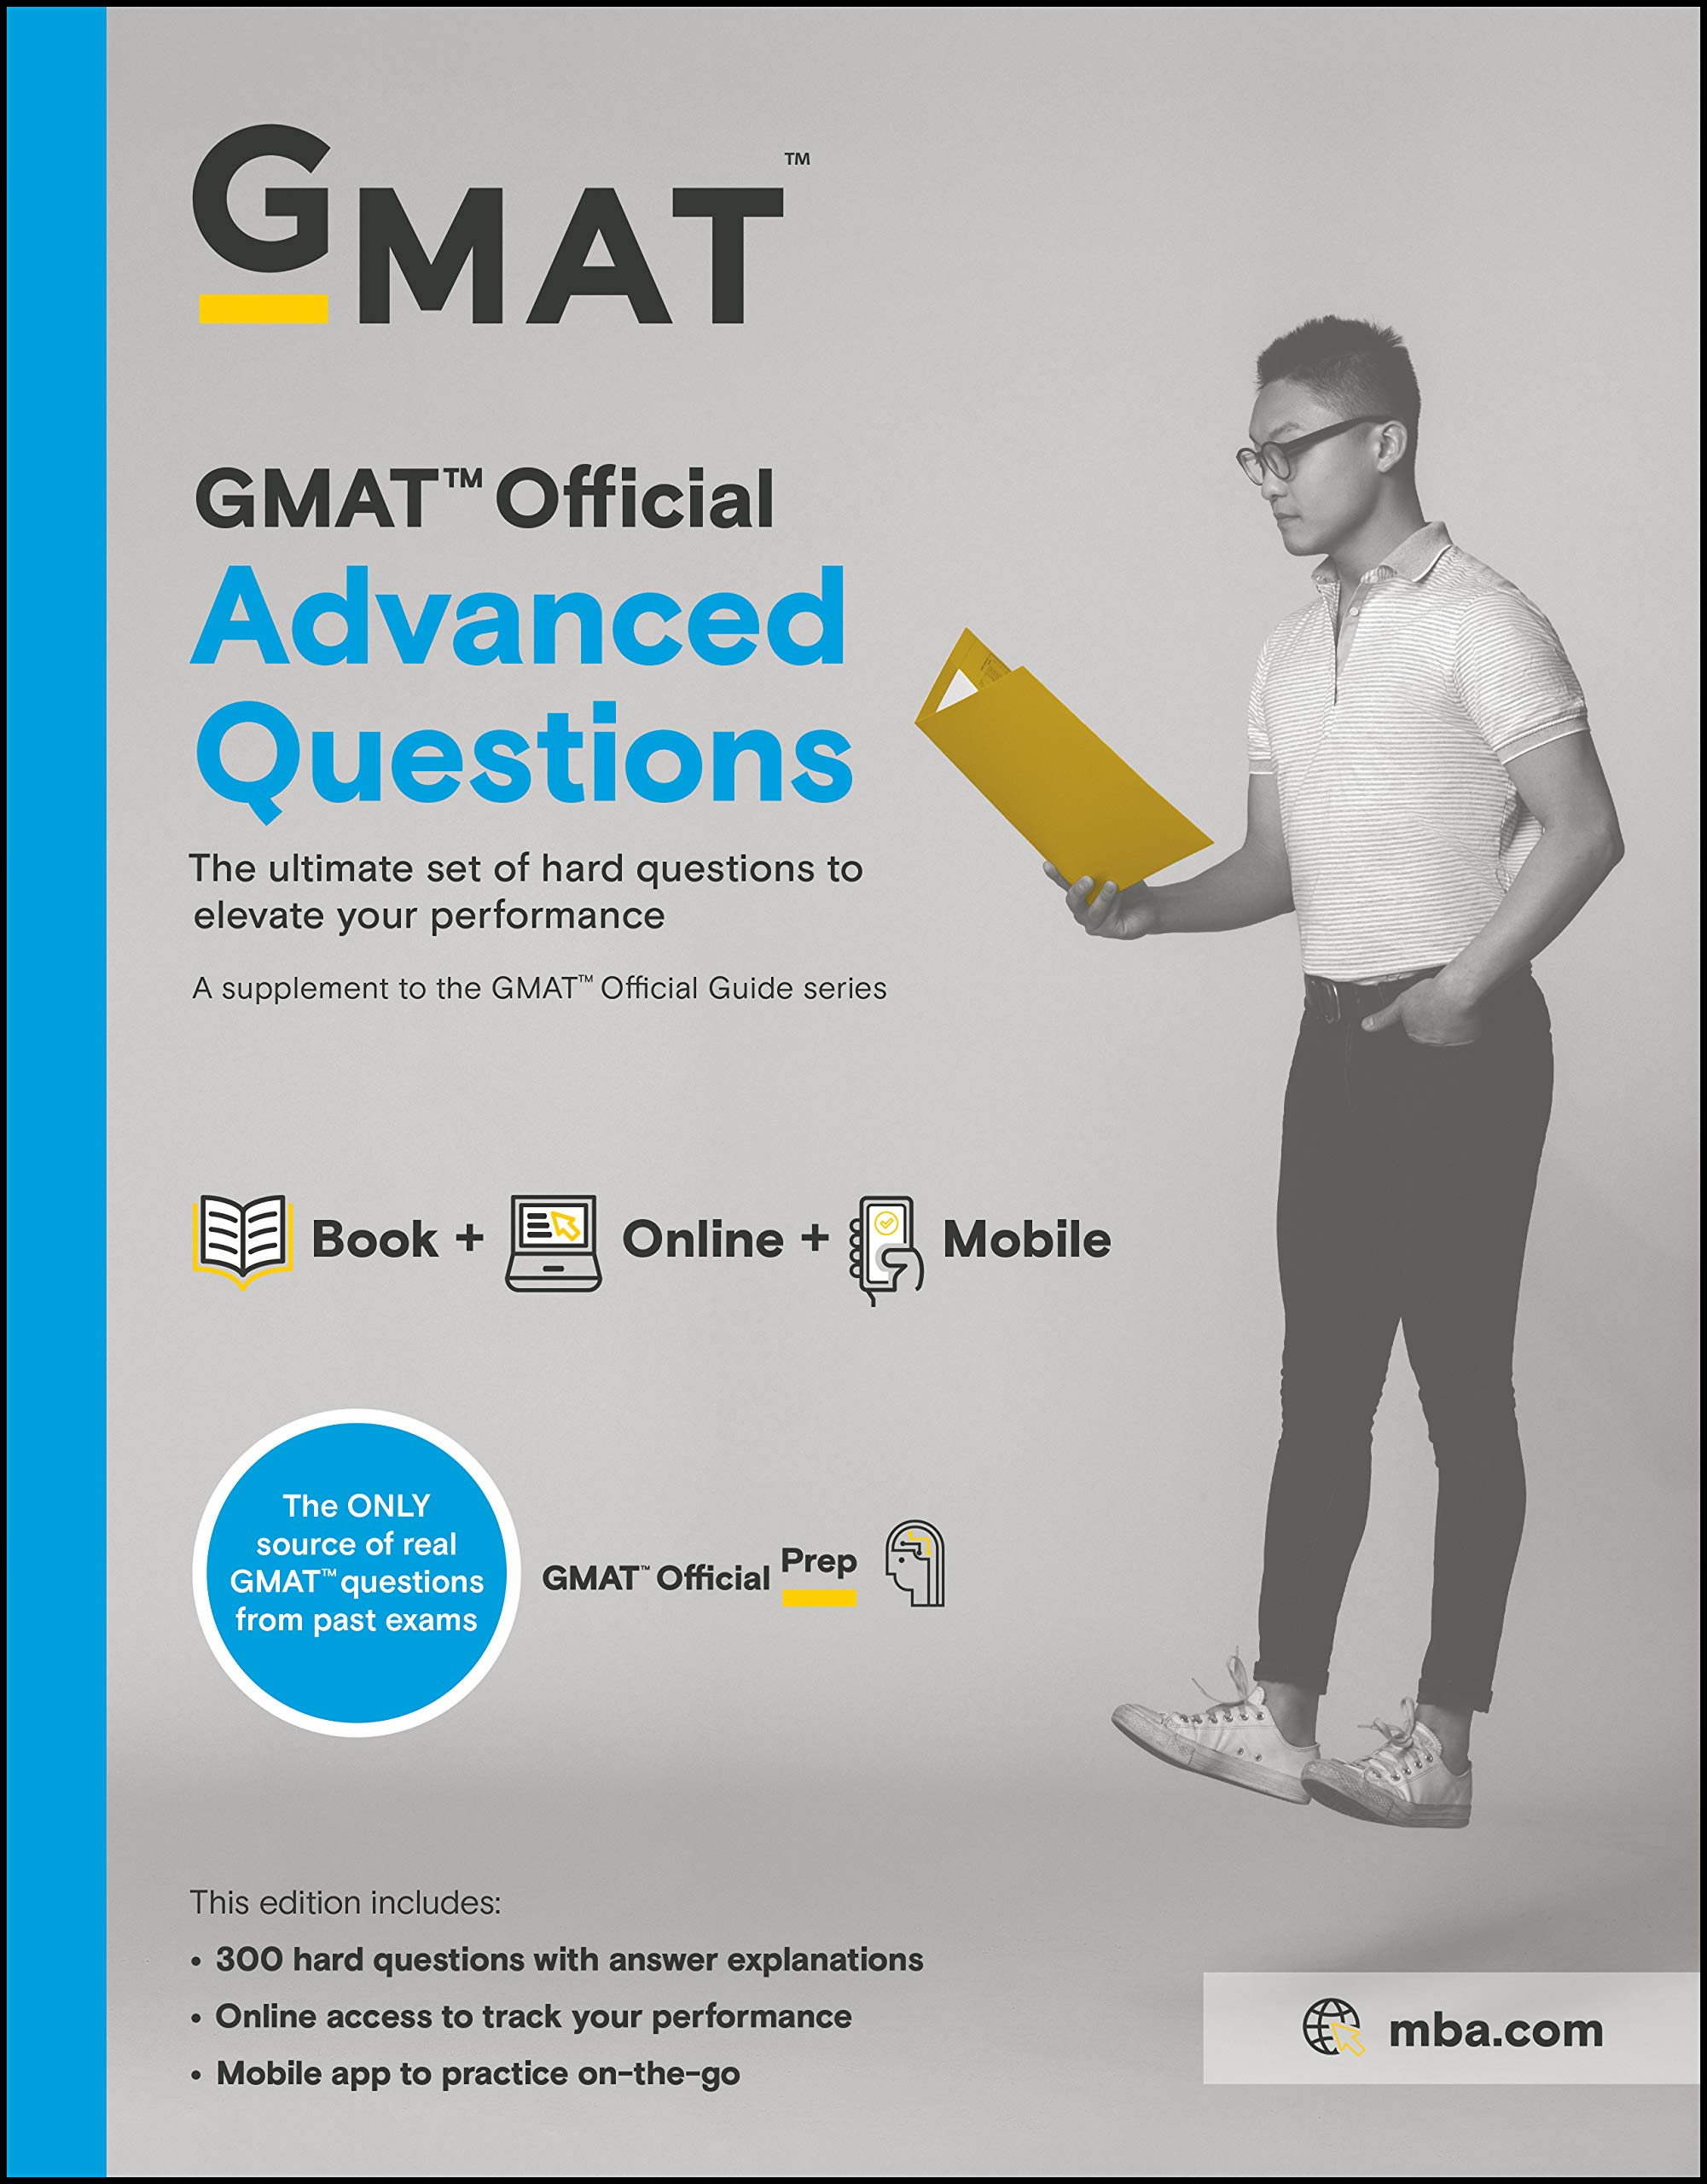 Image OfGMAT Official Advanced Questions